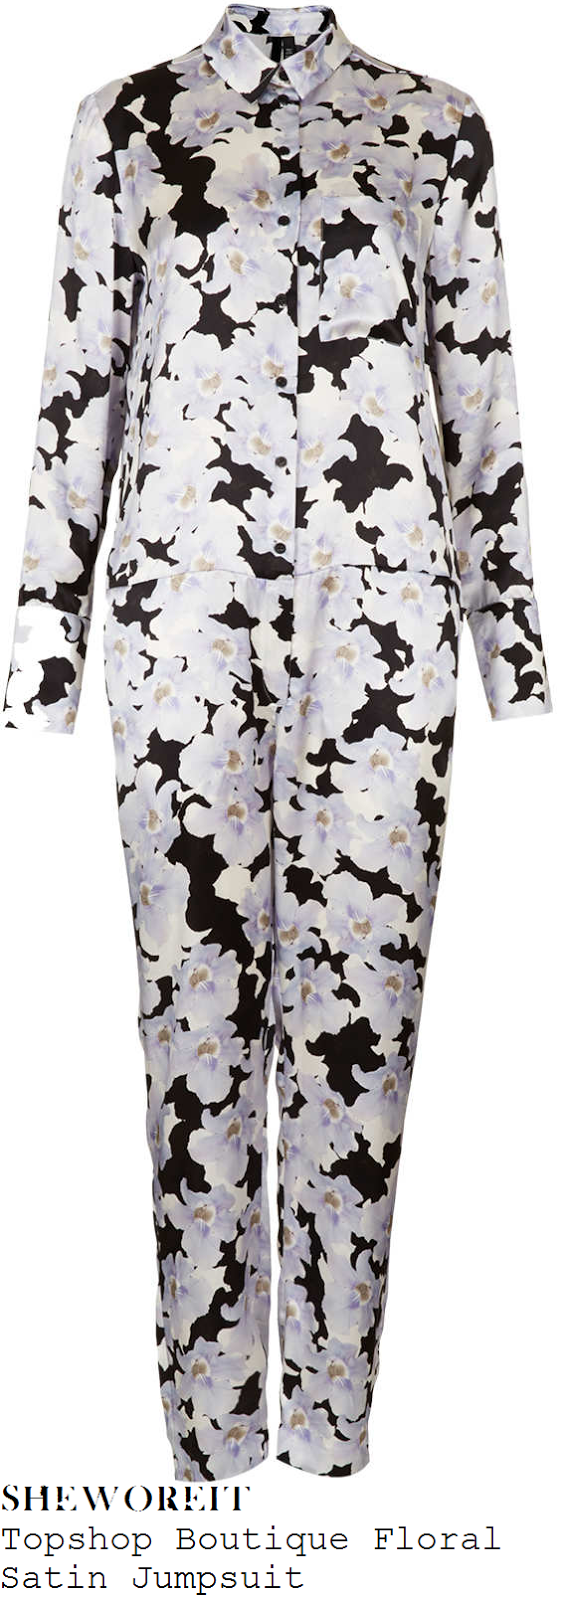 fearne-cotton-floral-print-jumpsuit